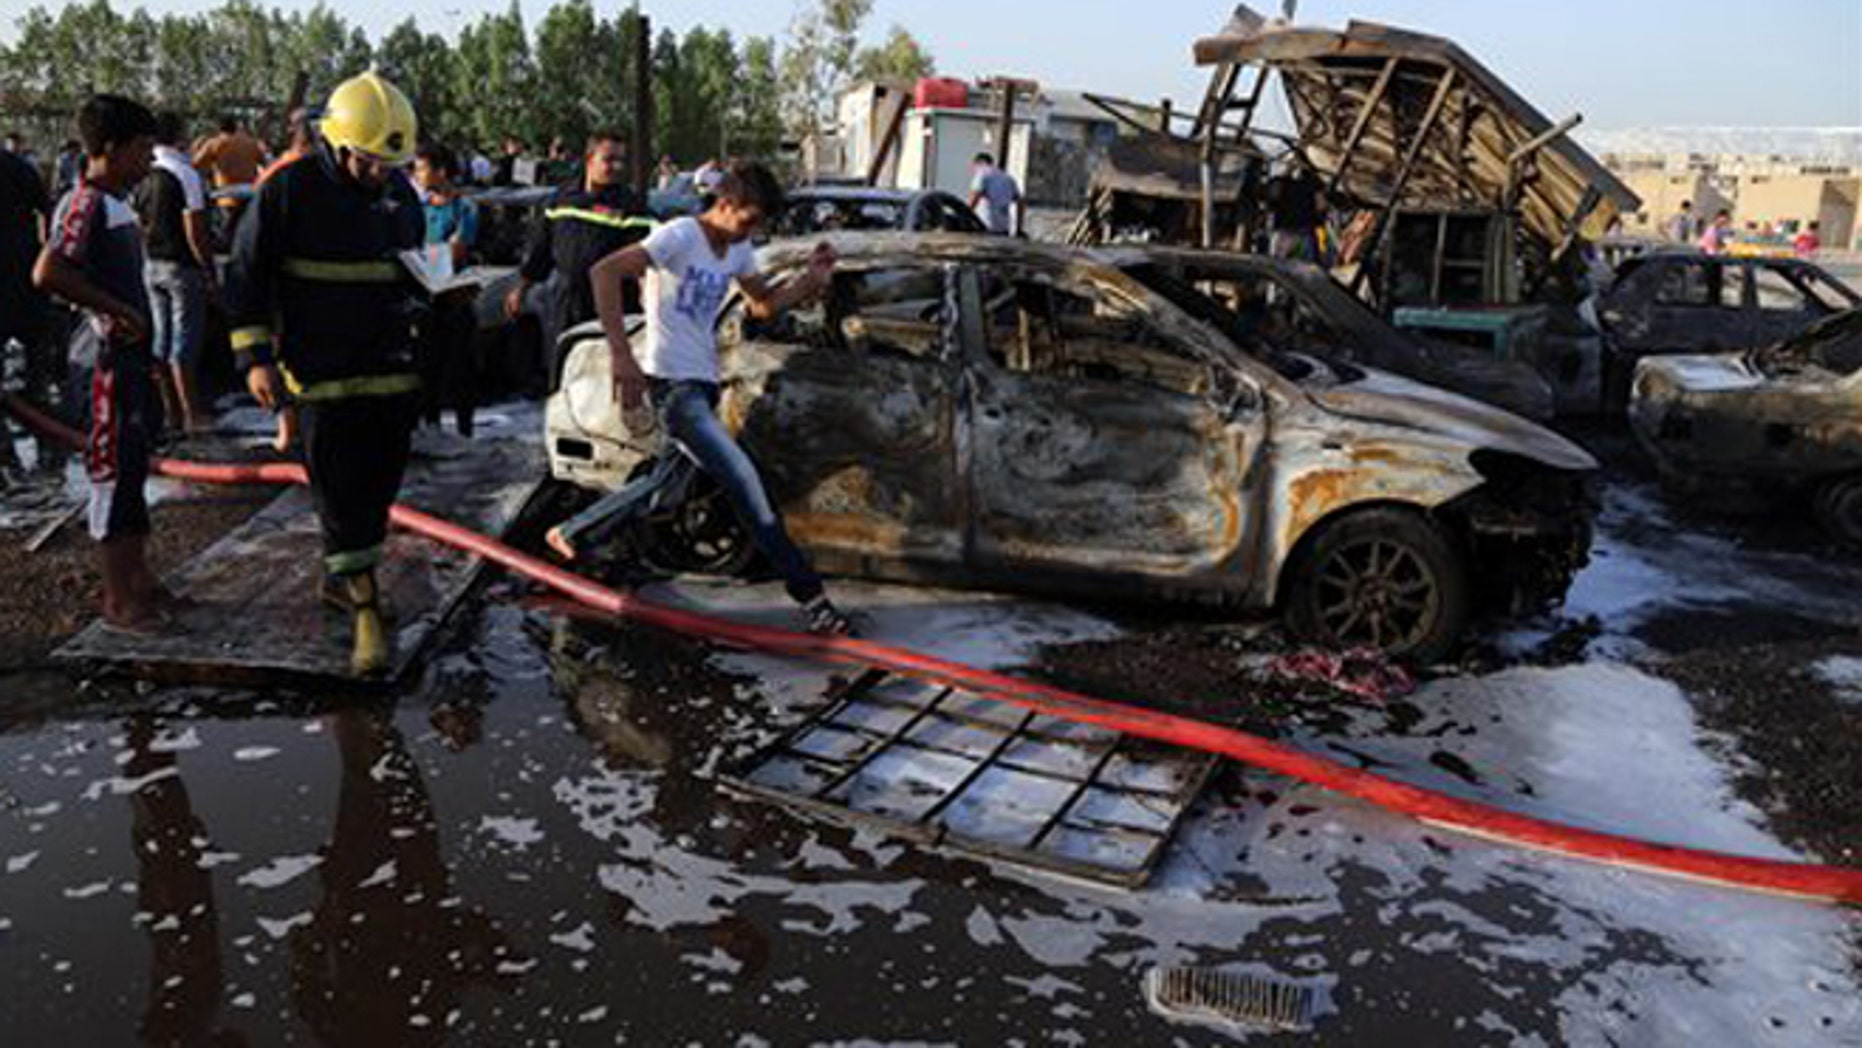 Aug 15, 2015: Civilians and security forces gather at the scene of a deadly car bomb in the Habibiya neighborhood of Sadr City, Baghdad, Iraq.